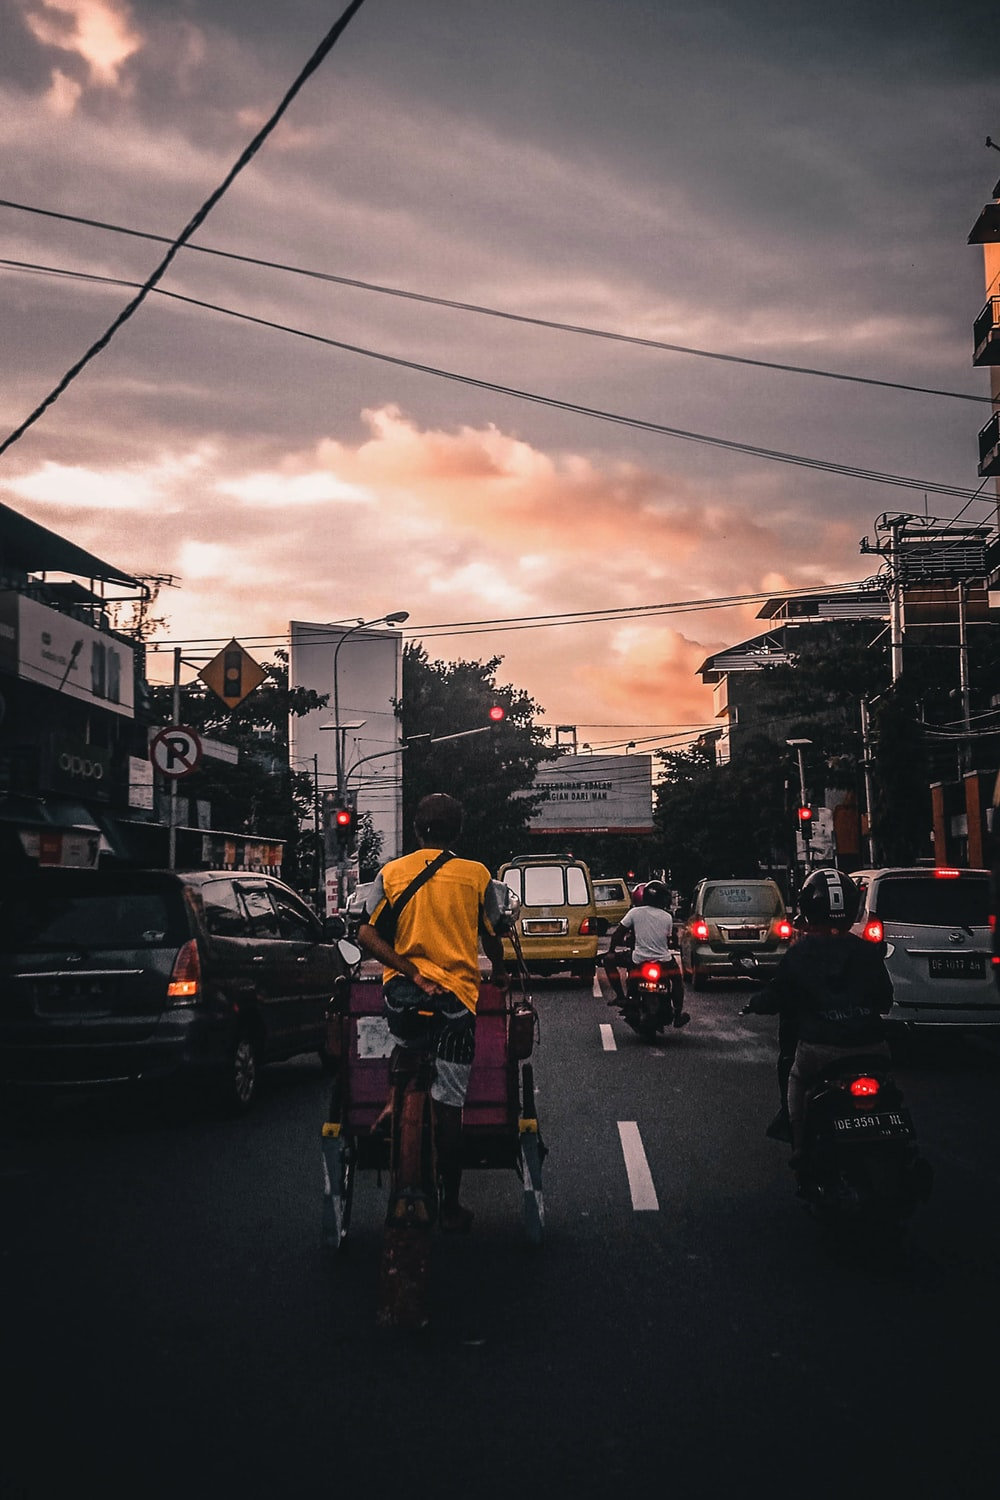 vehicles passing on road during golden hour